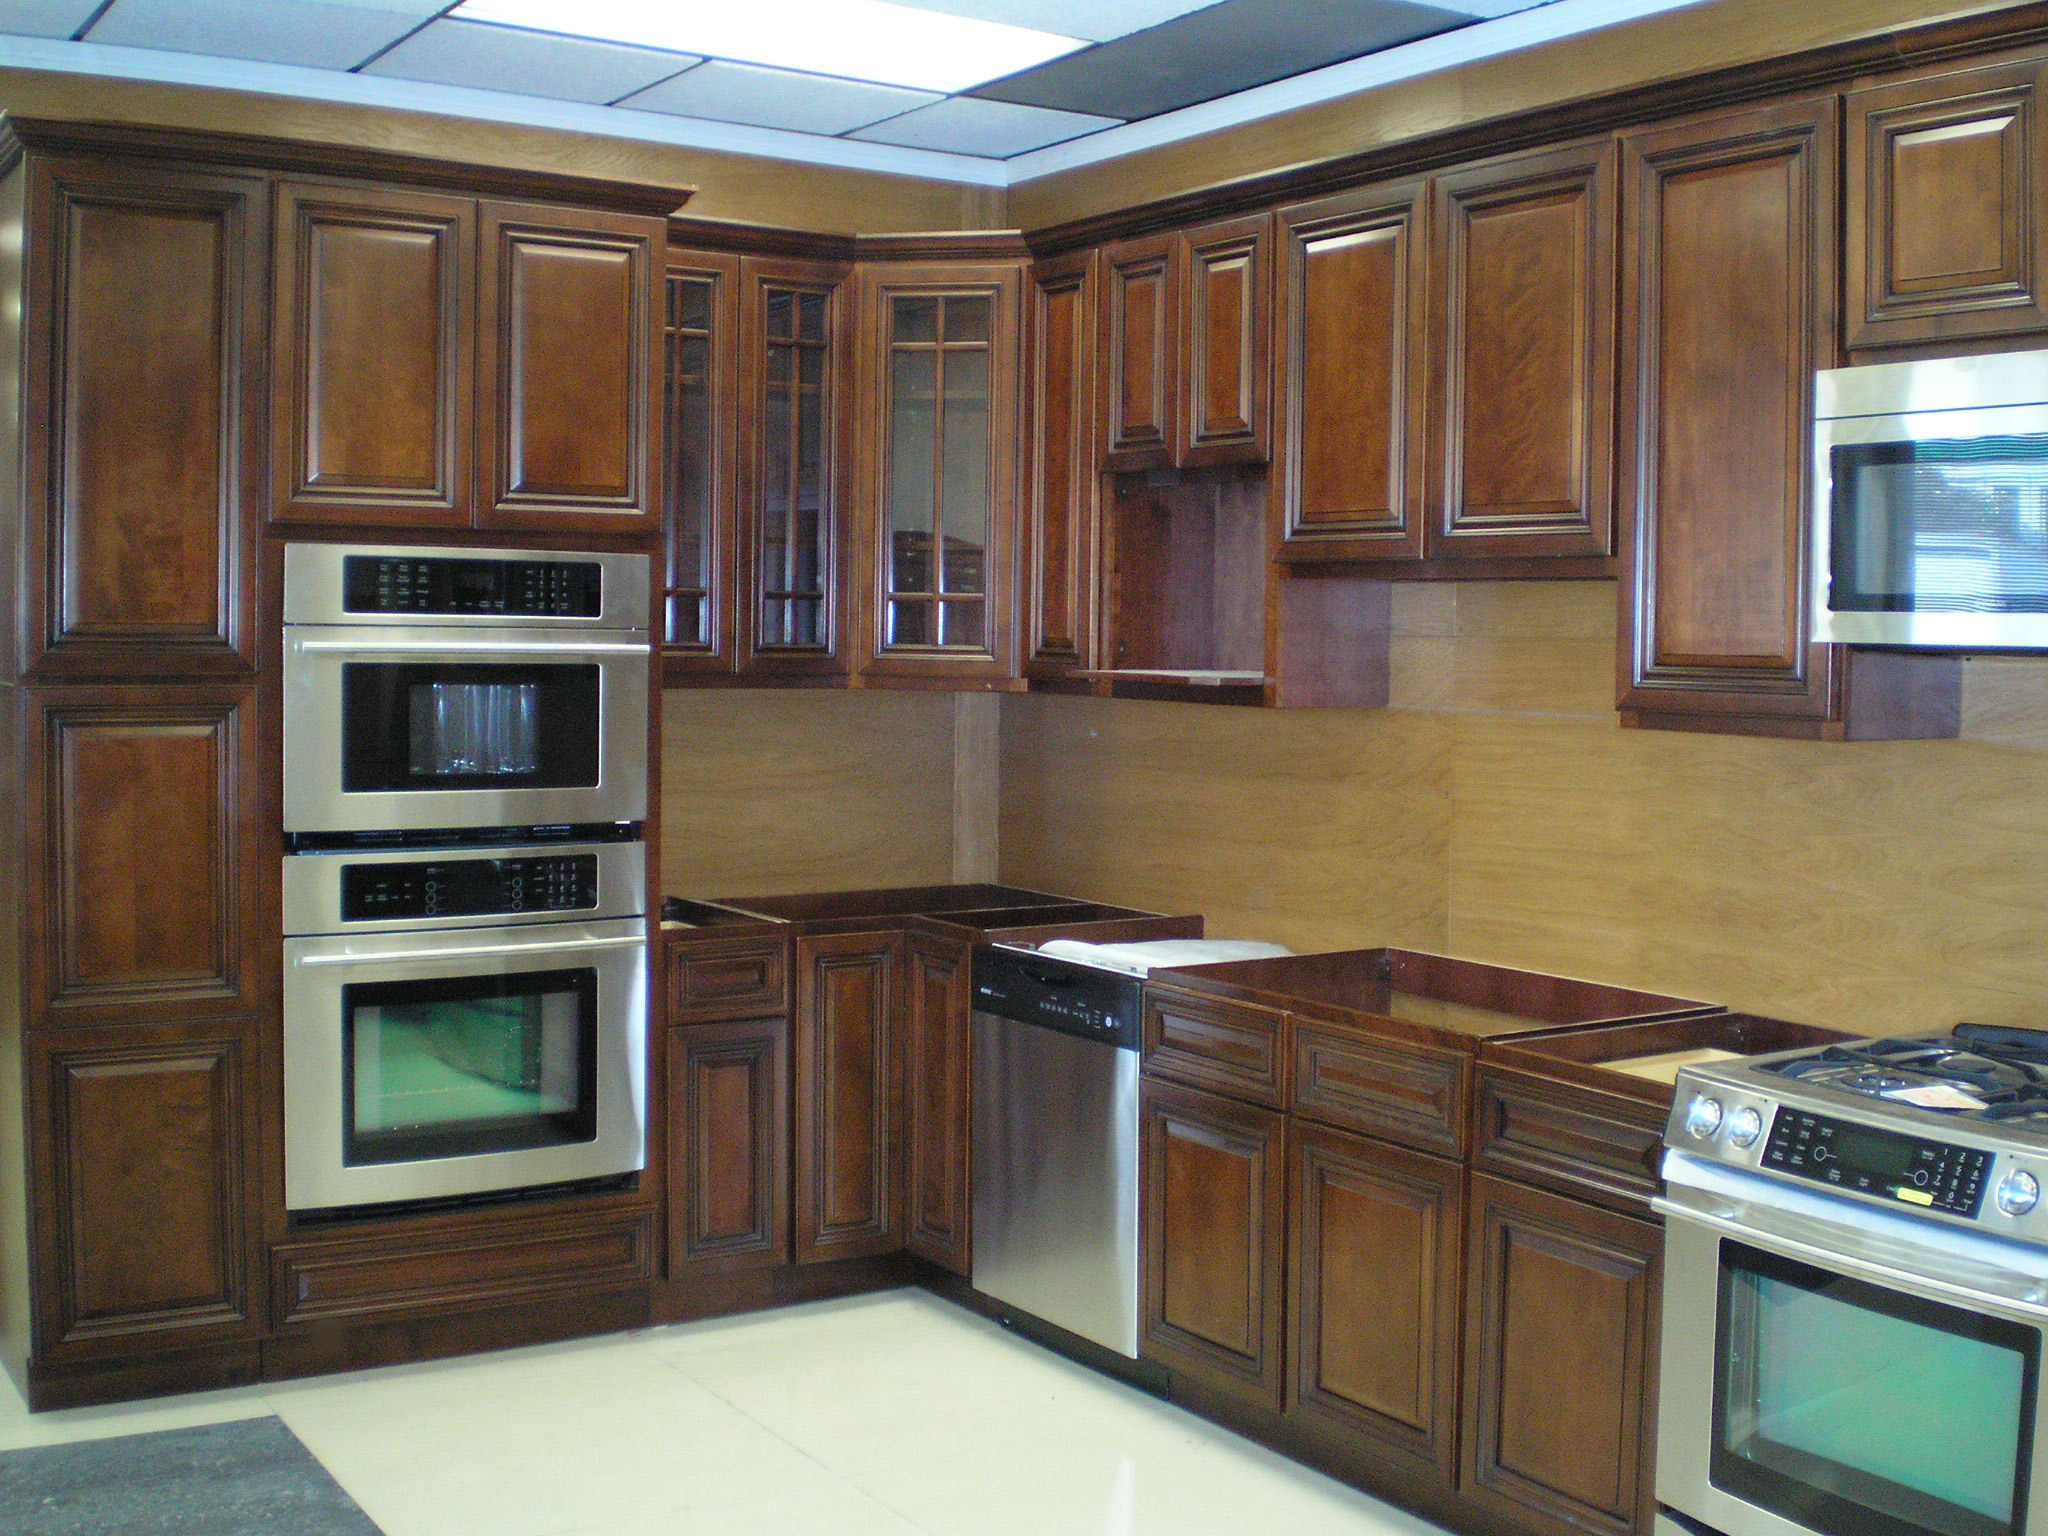 kitchen with wooden cabinets n wood kitchen chairs Wood Kitchen Furniture Gallery Of Our Exclusive All Wood Cabinetry E